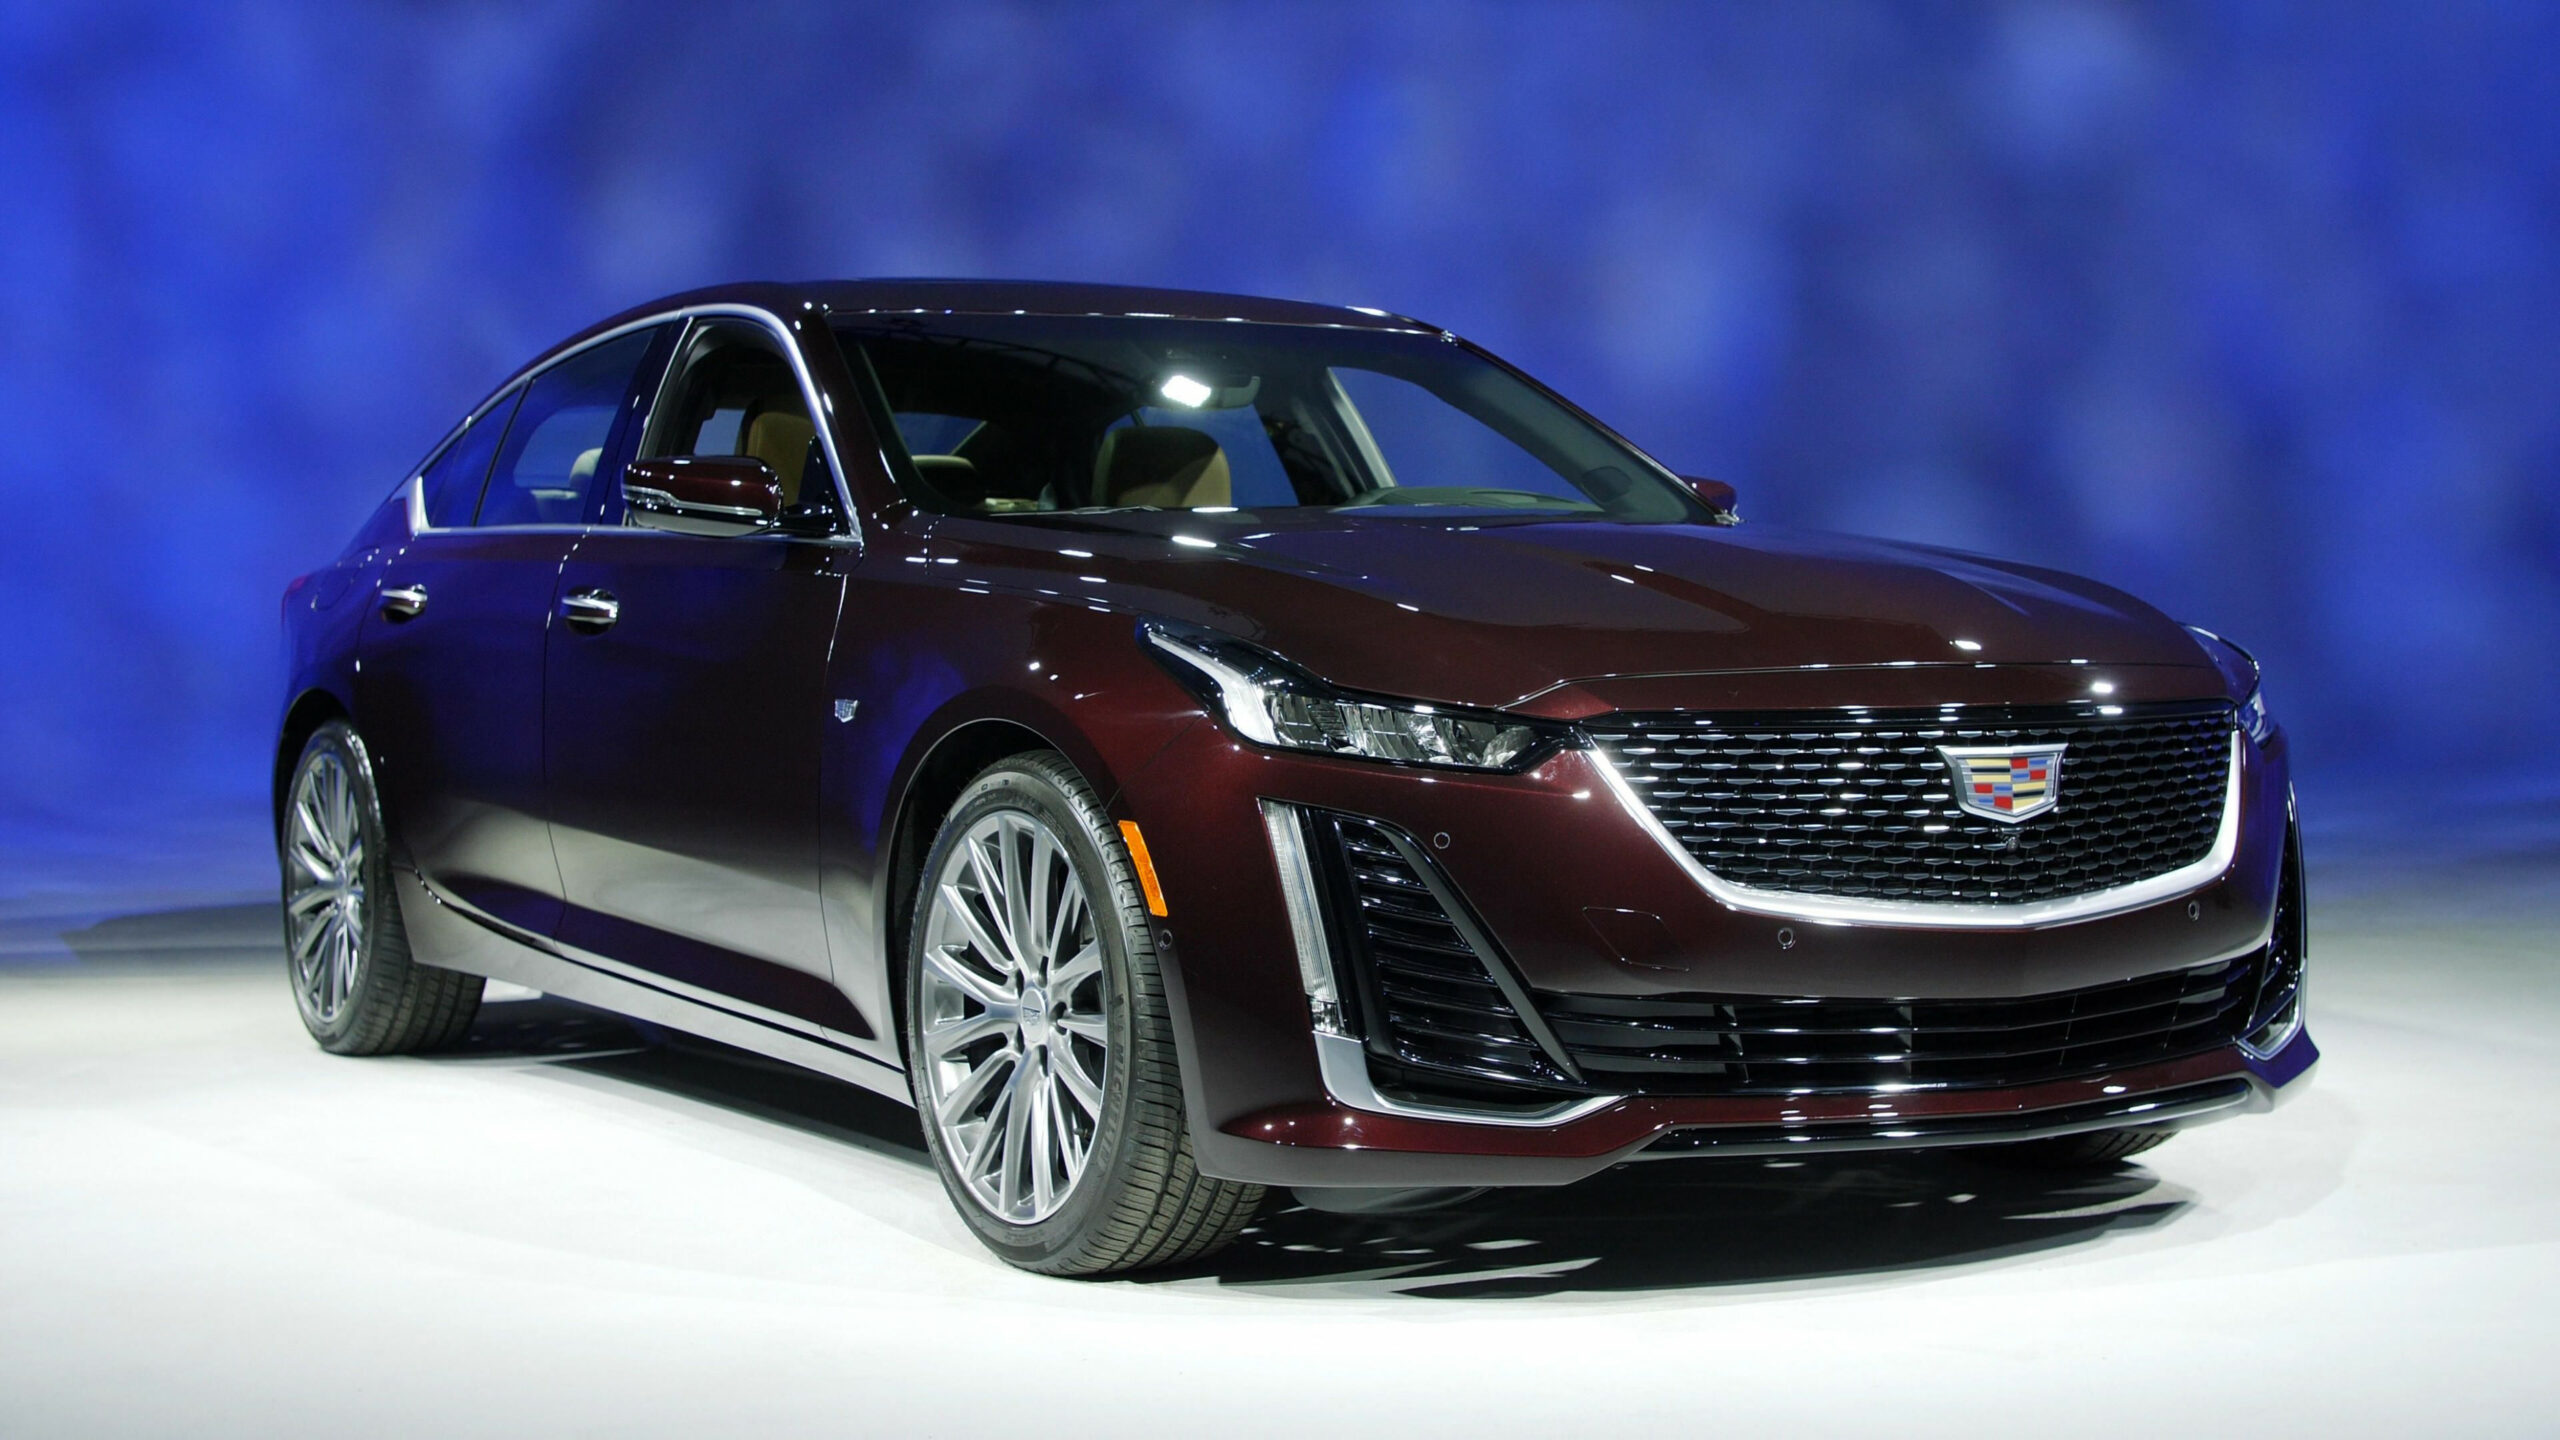 8 Cadillac CT8 is a right-sized, sporty luxury sedan